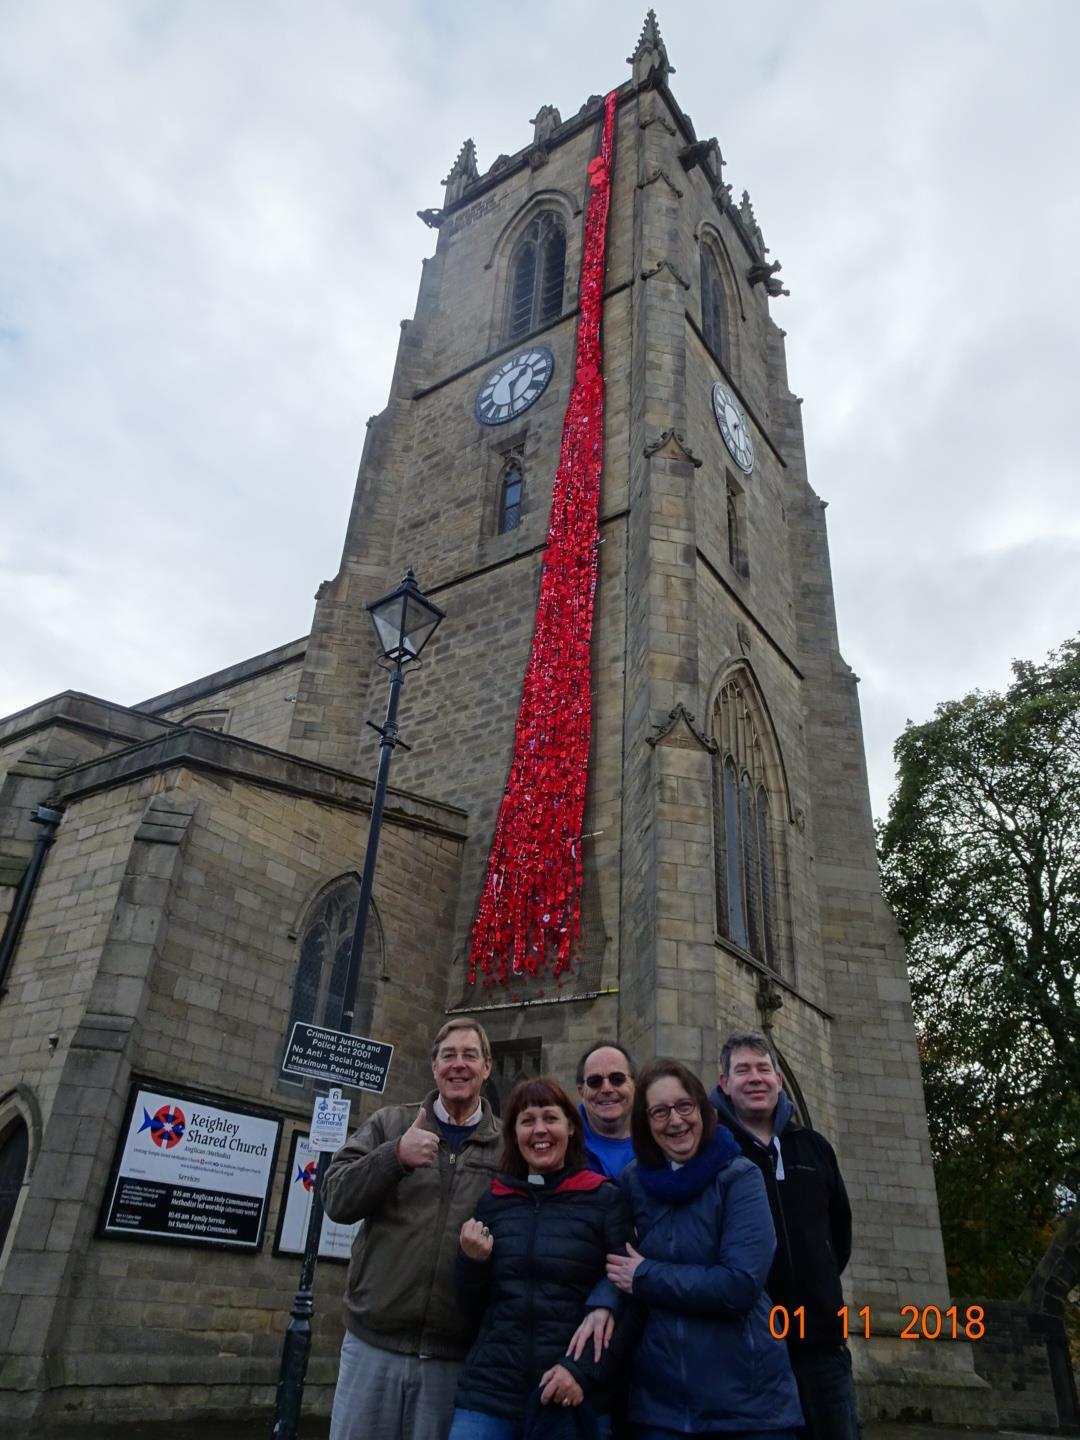 Keighley Shared Church with its poppy display, from left, back, Howard Carter, Andrew Parfitt, James Bailey, front, Rev Natasha Thomas, Rev Tracey Raistrick